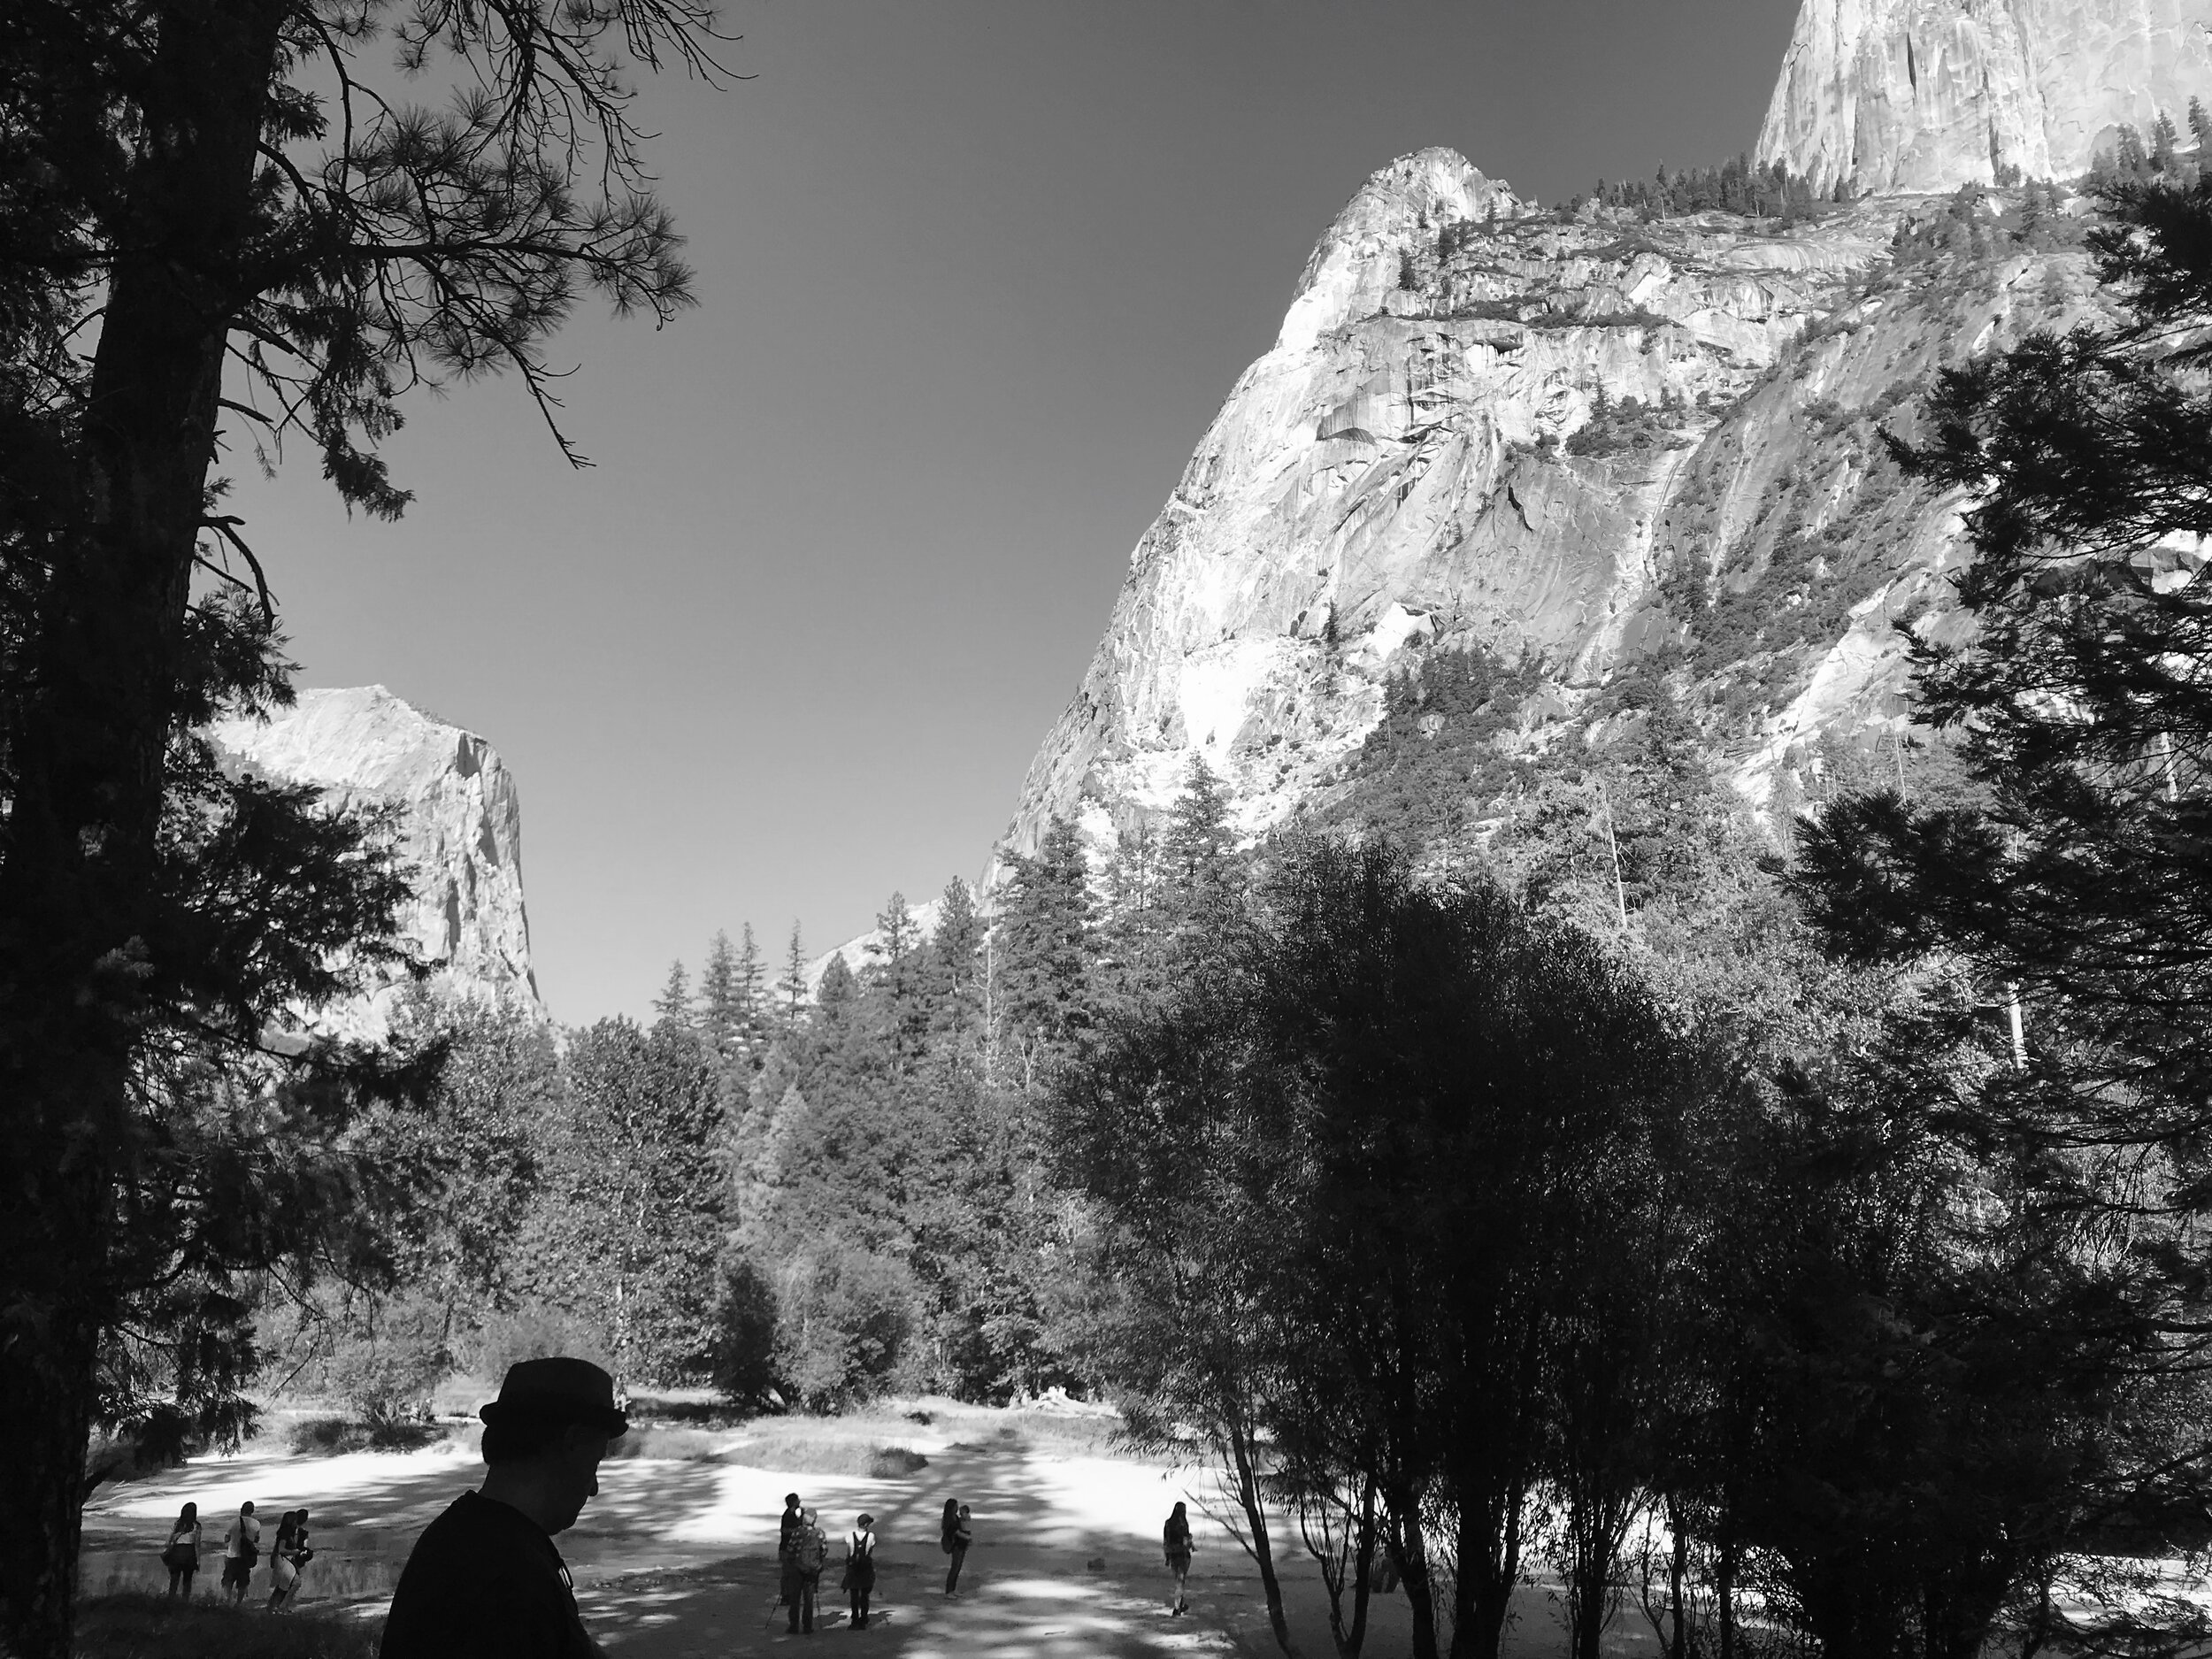 Alarmed by a completely dry lakebed, we explored Mirror Lake at Yosemite where we watched a caterpillar burrow (below).